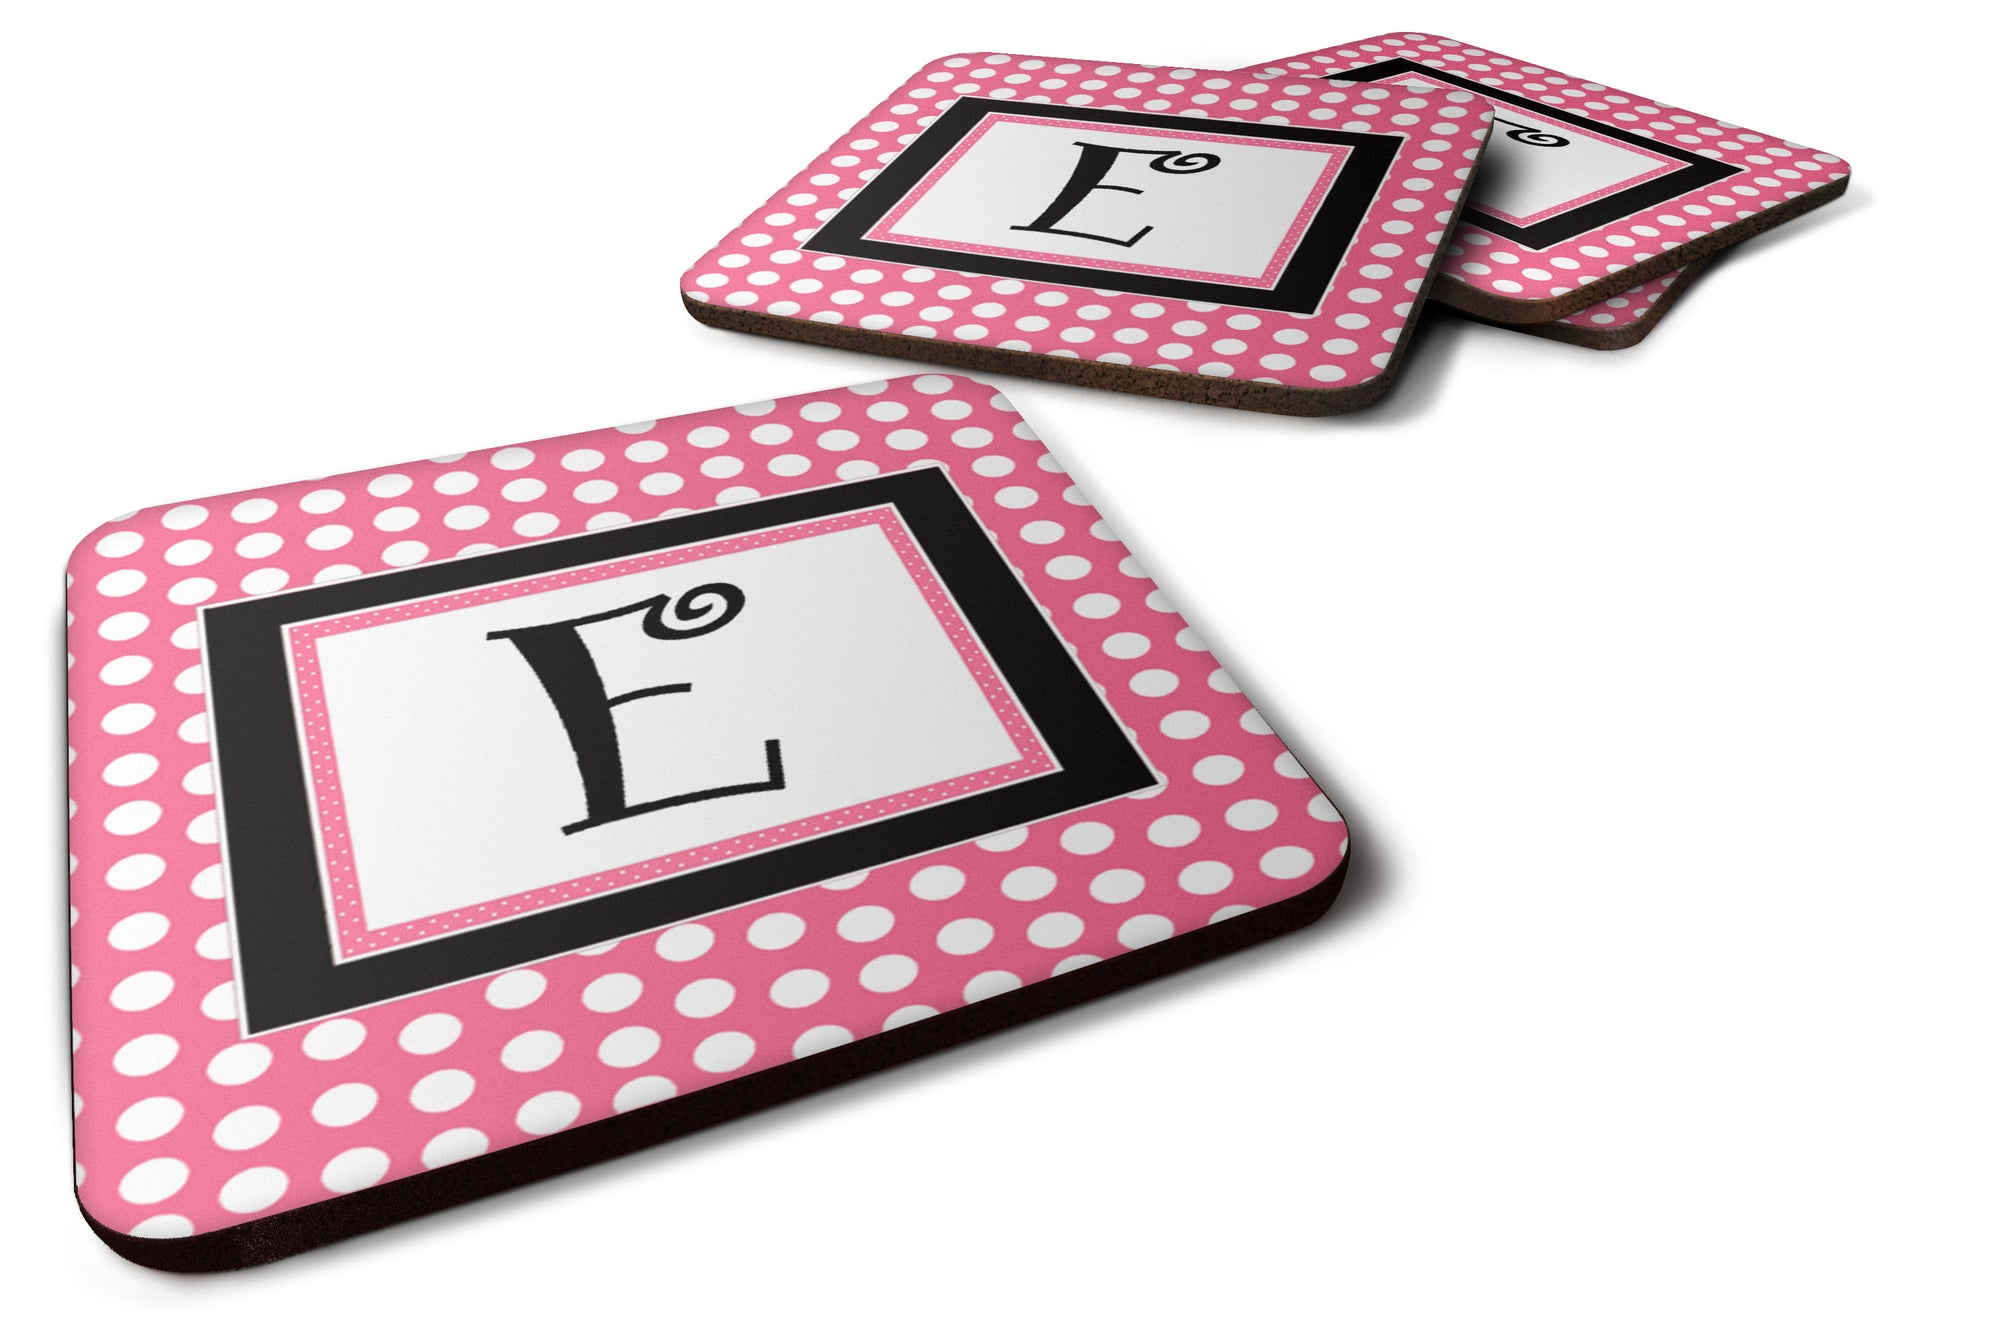 Set of 4 Monogram - Pink Black Polka Dots Foam Coasters Initial Letter E by Caroline's Treasures